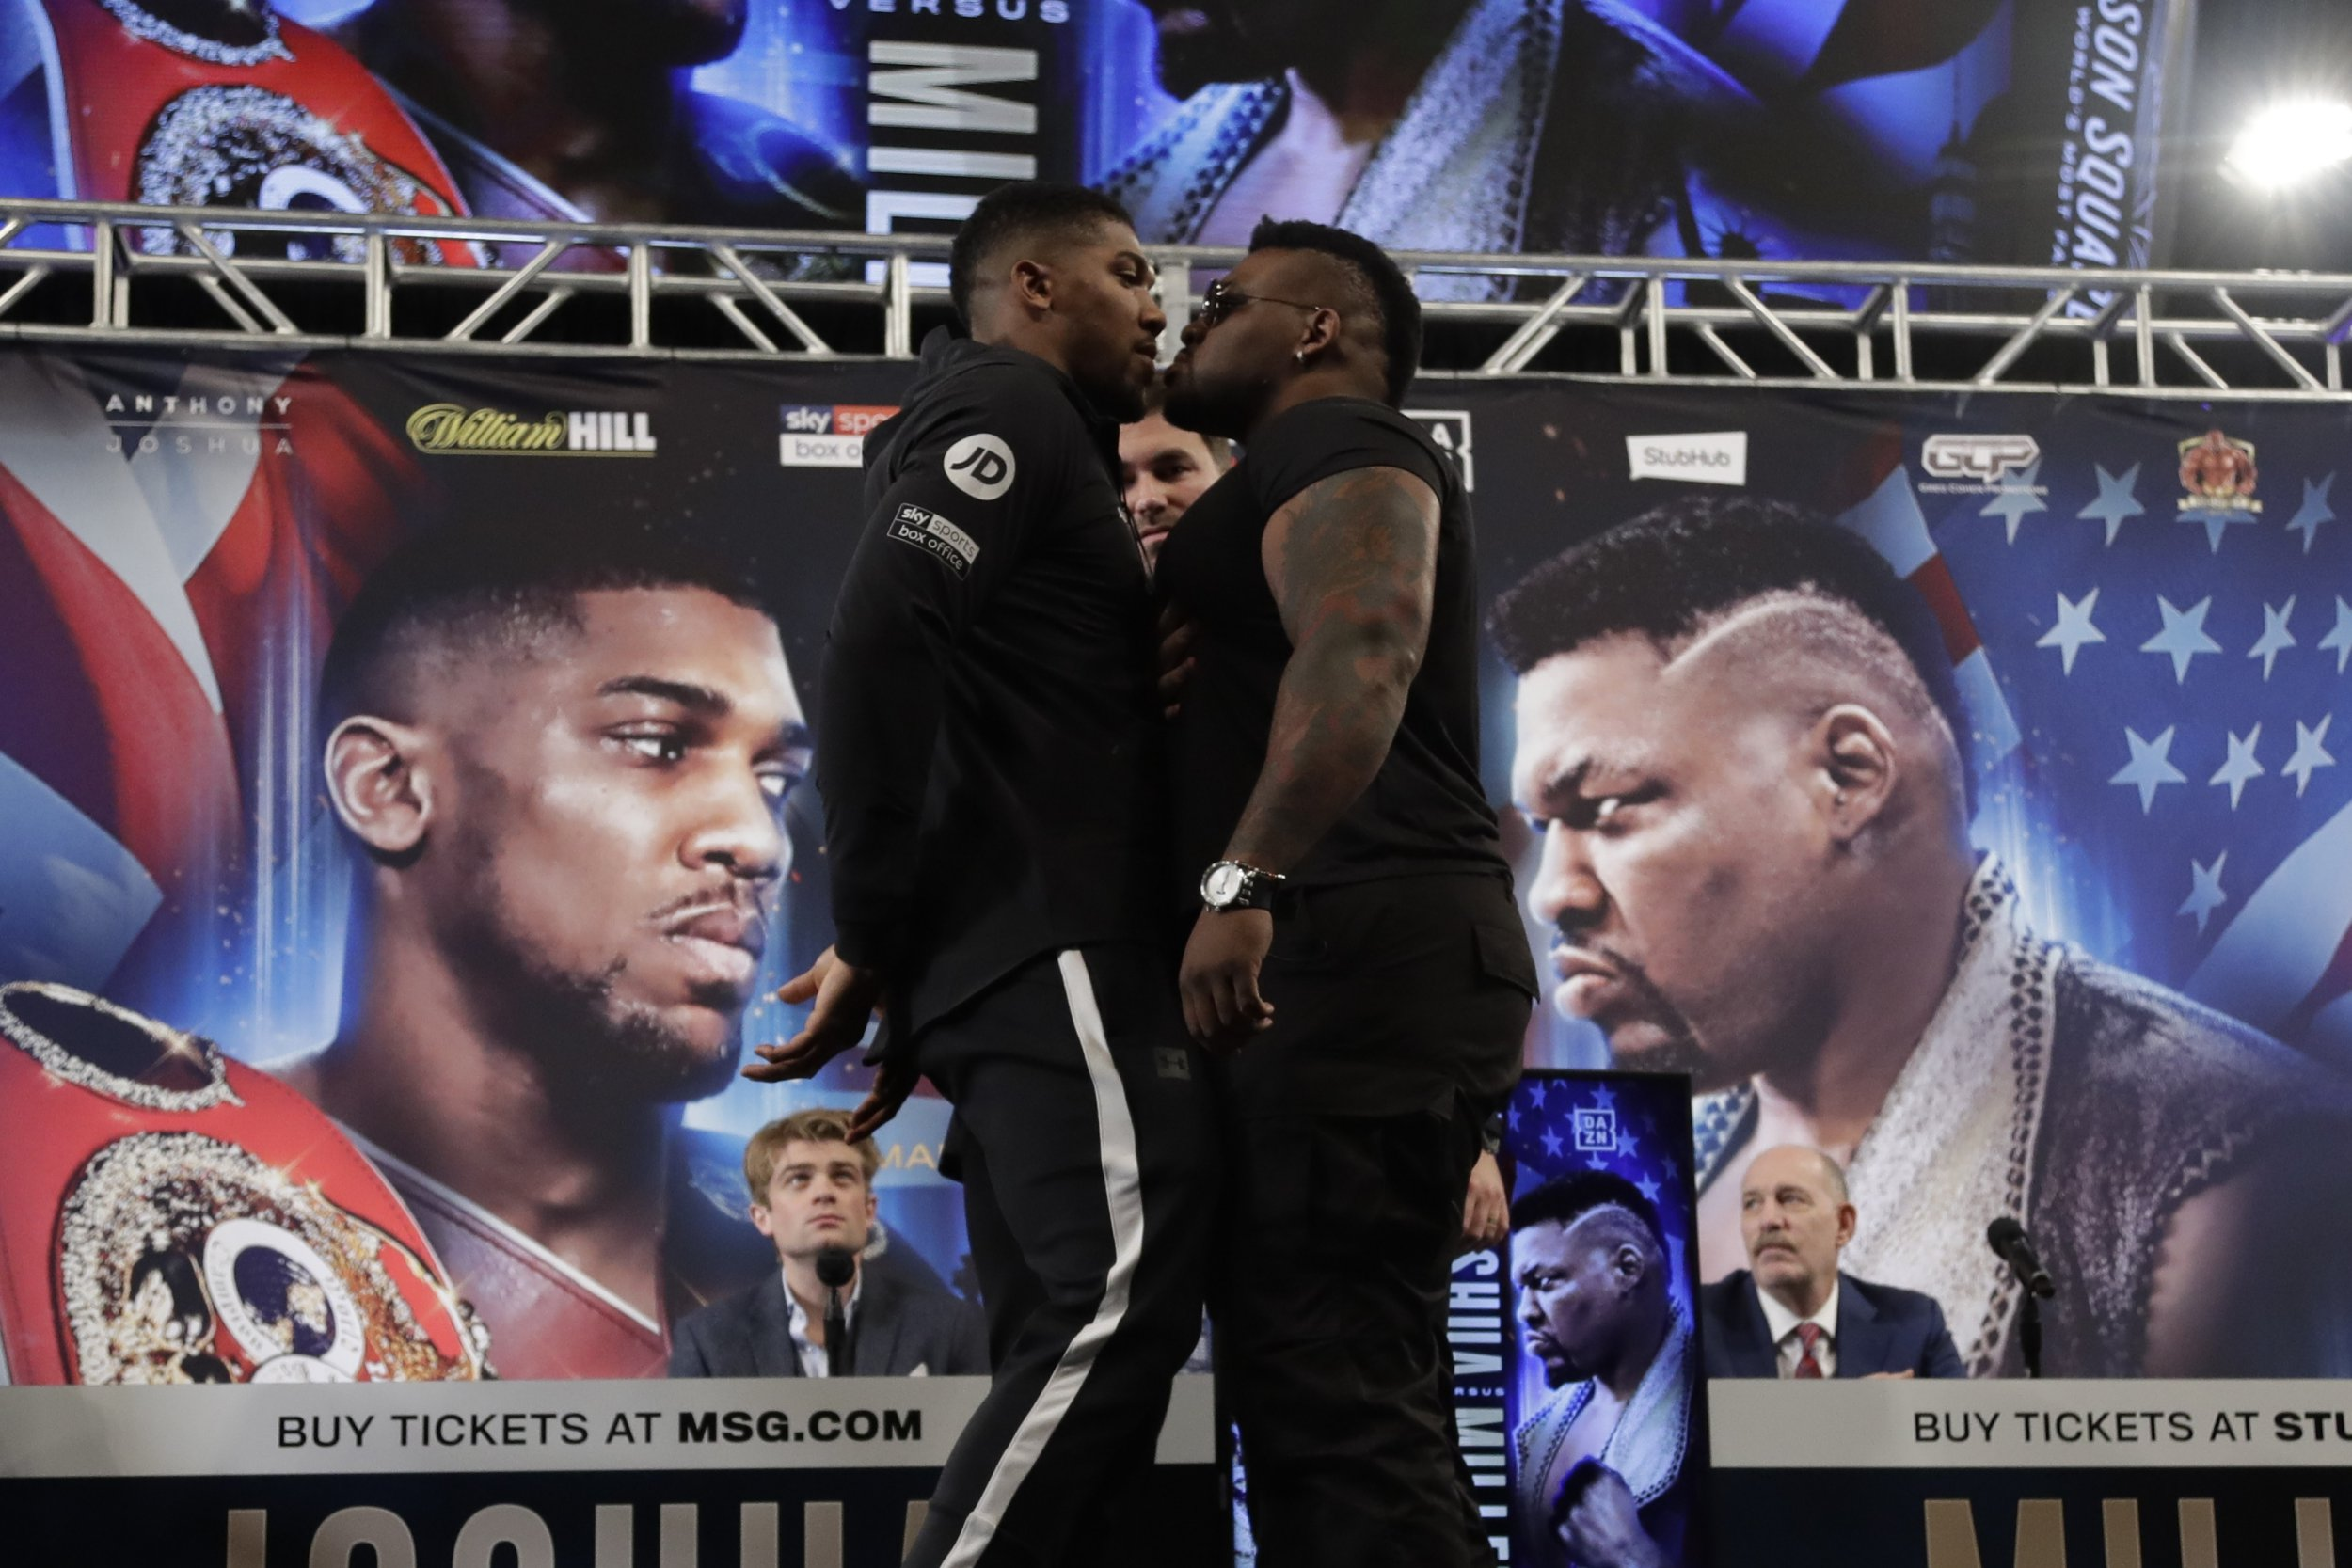 British boxer Anthony Joshua, left, and Jarrell Miller, right, pose for photographs during a news conference to promote their upcoming fight, Tuesday, Feb. 19, 2019, in New York. (AP Photo/Frank Franklin II)